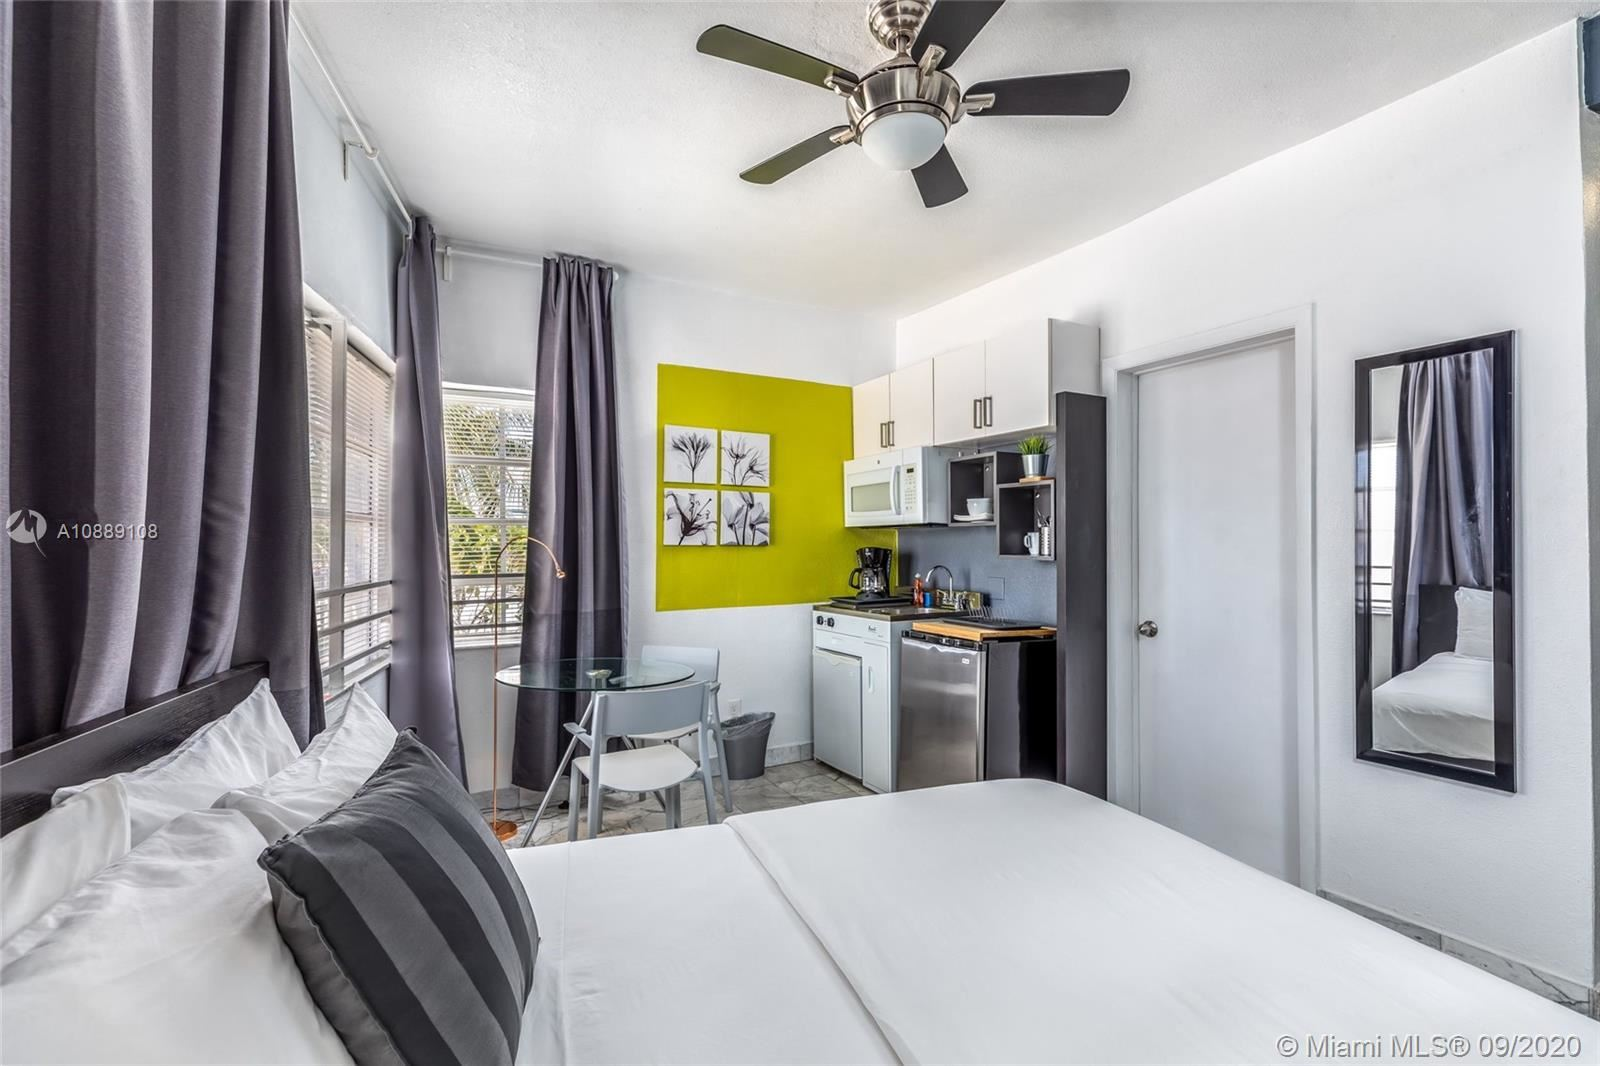 763 Pennsylvania Ave #120, Miami Beach, FL 33139 - #: A10889108